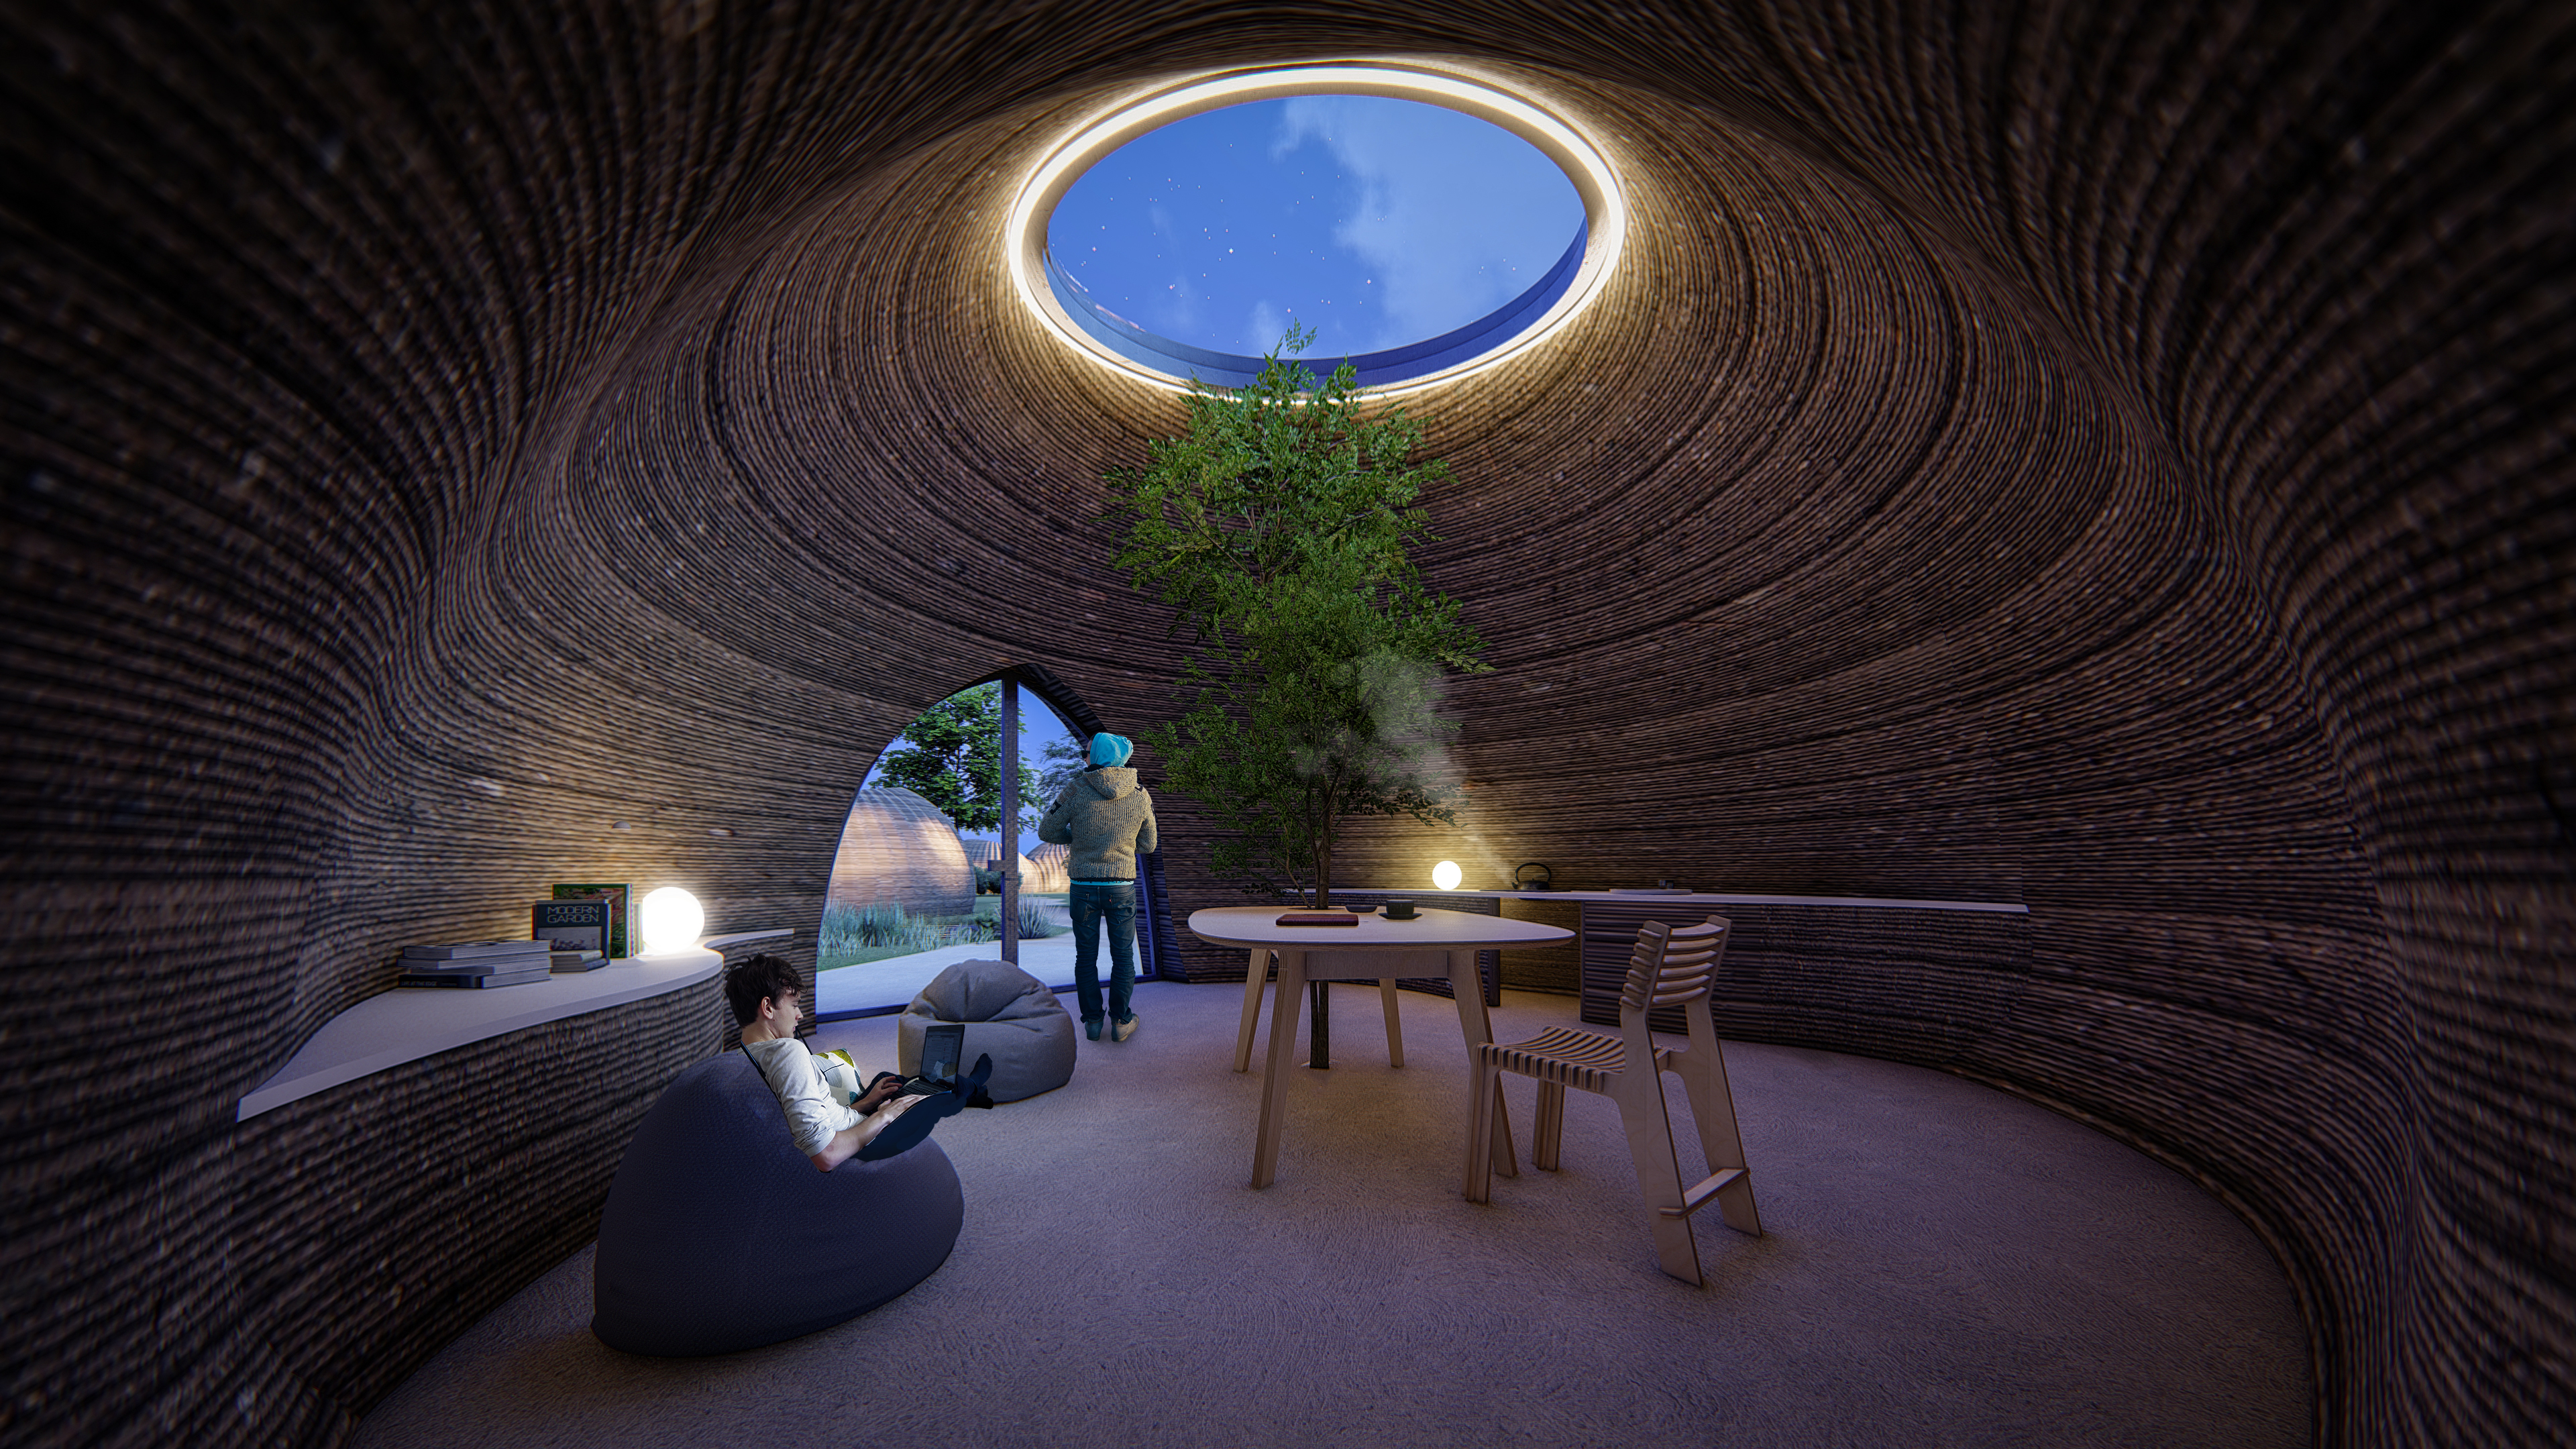 Rendering of the TECLA 3D printed earth house at night. Image via Mario Cucinella Architects.